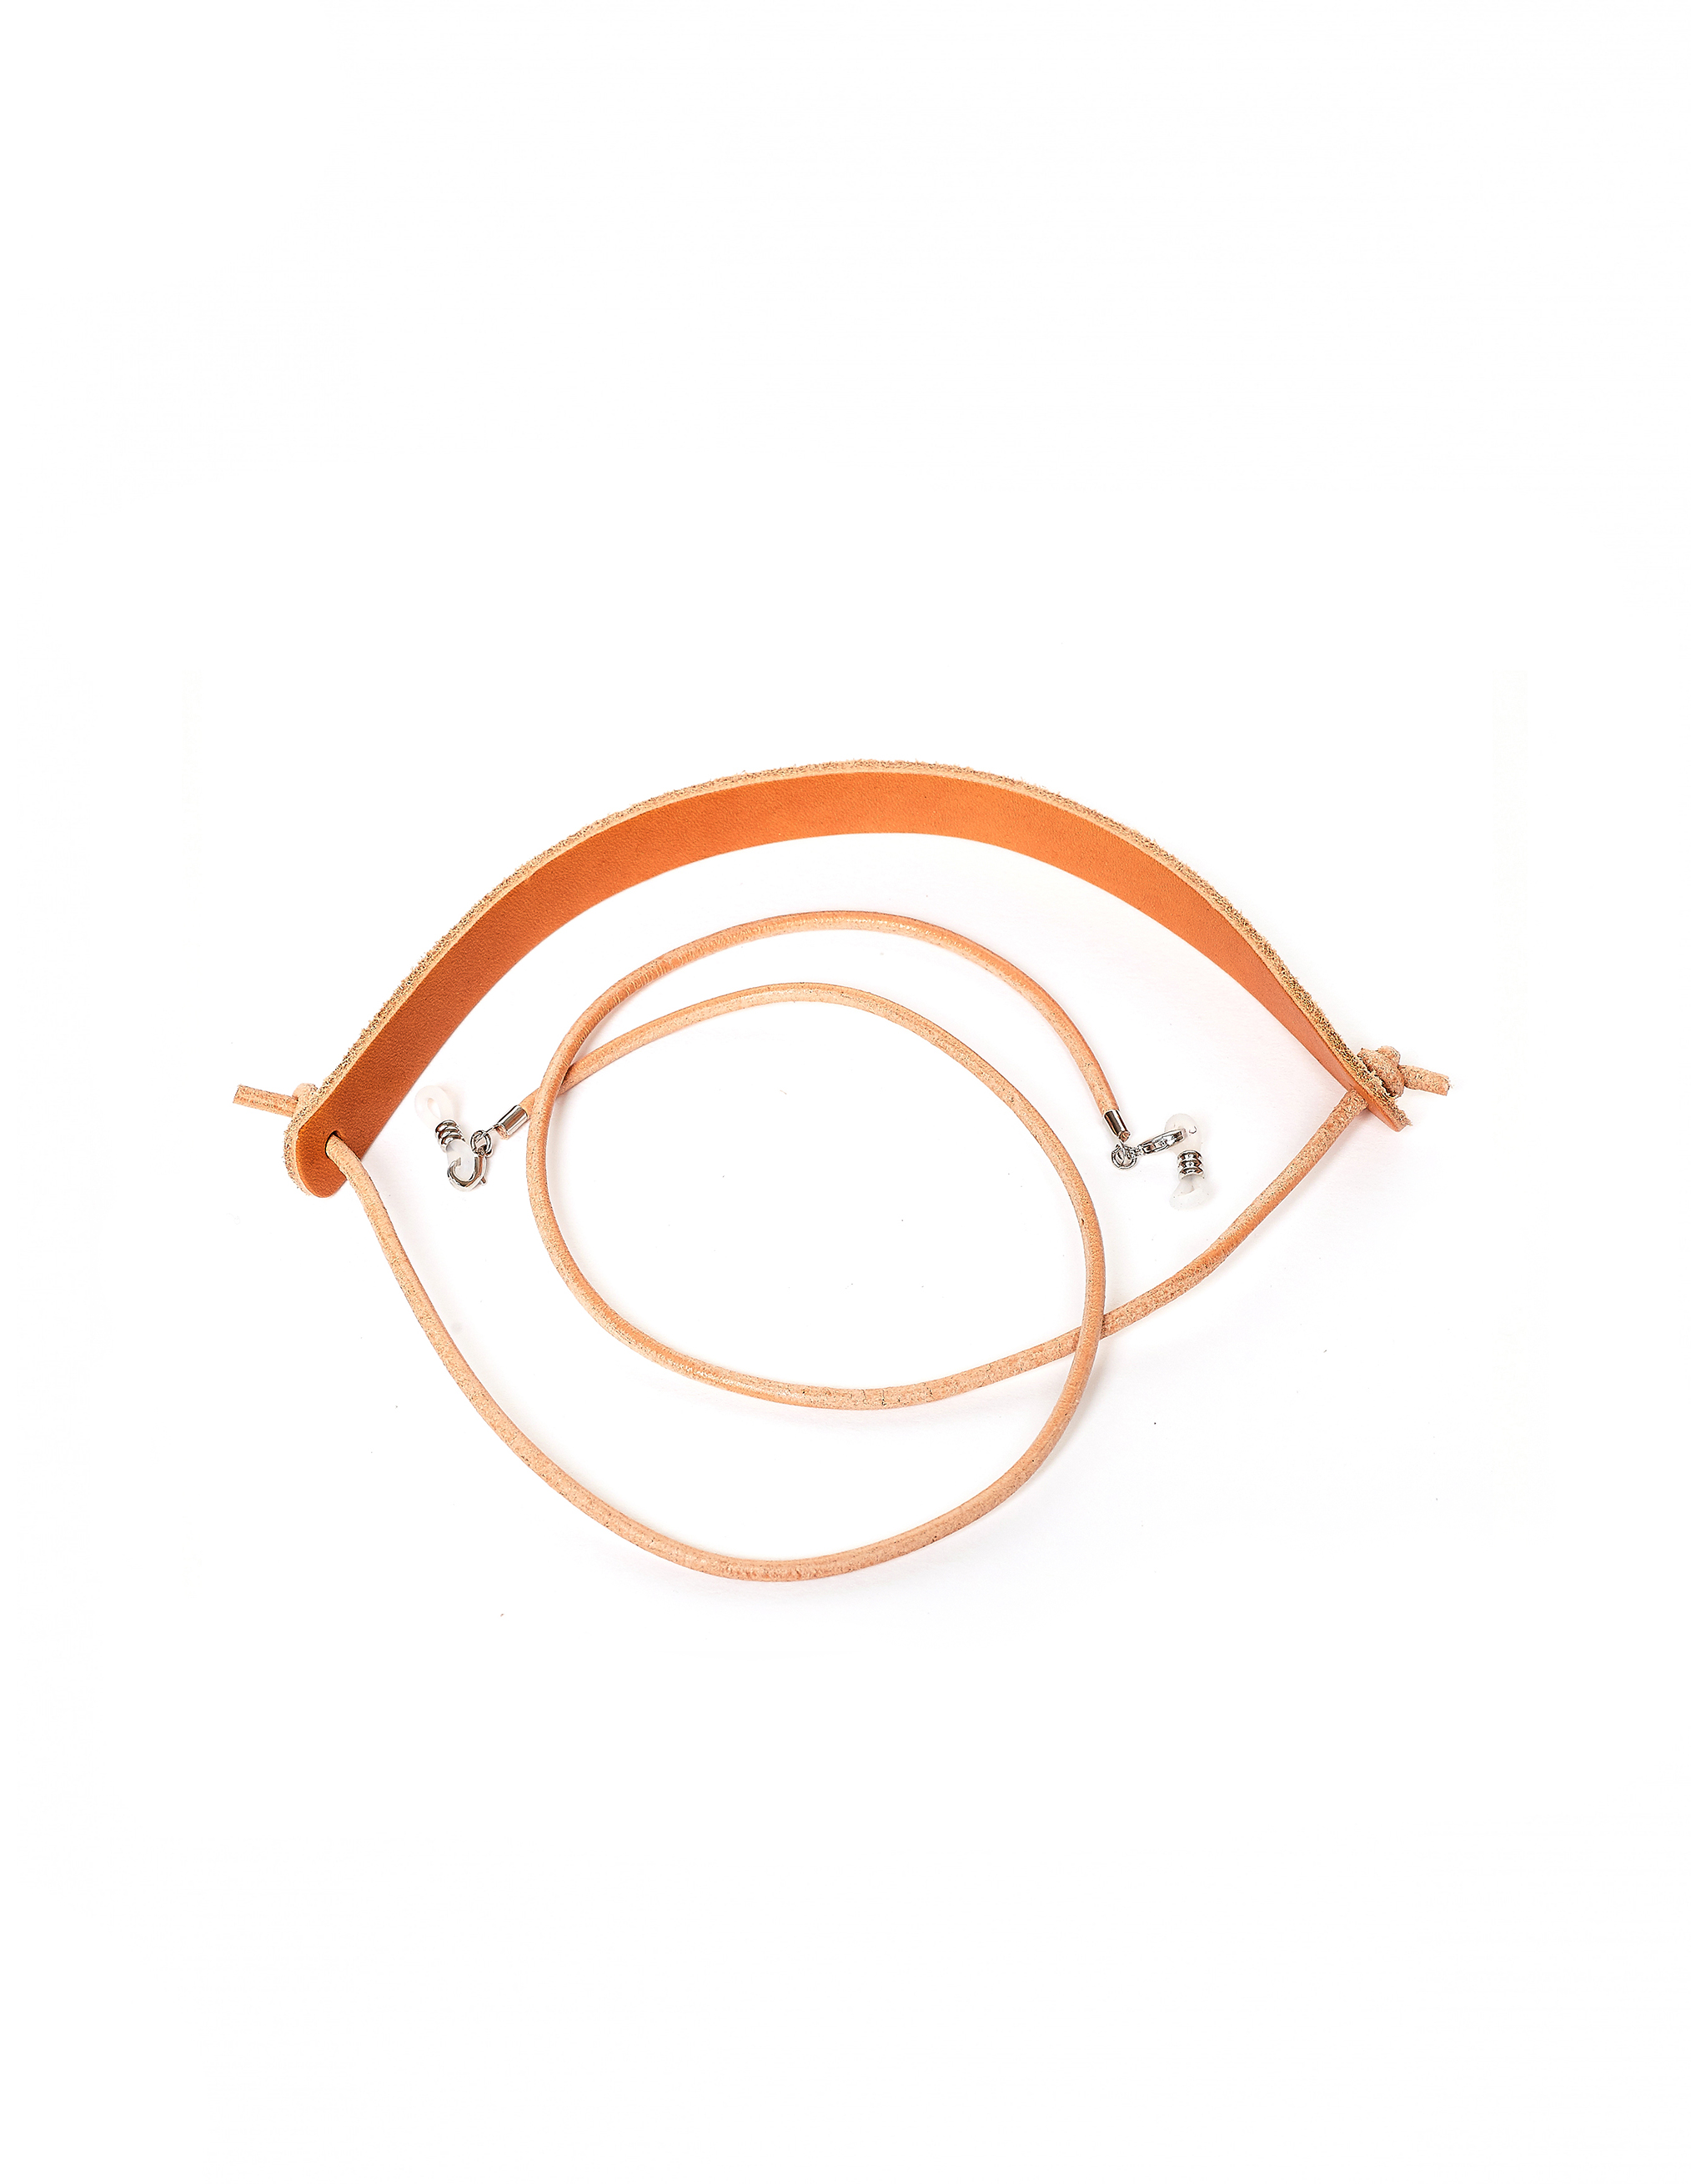 Hender Scheme Natural Leather Glasses Cord